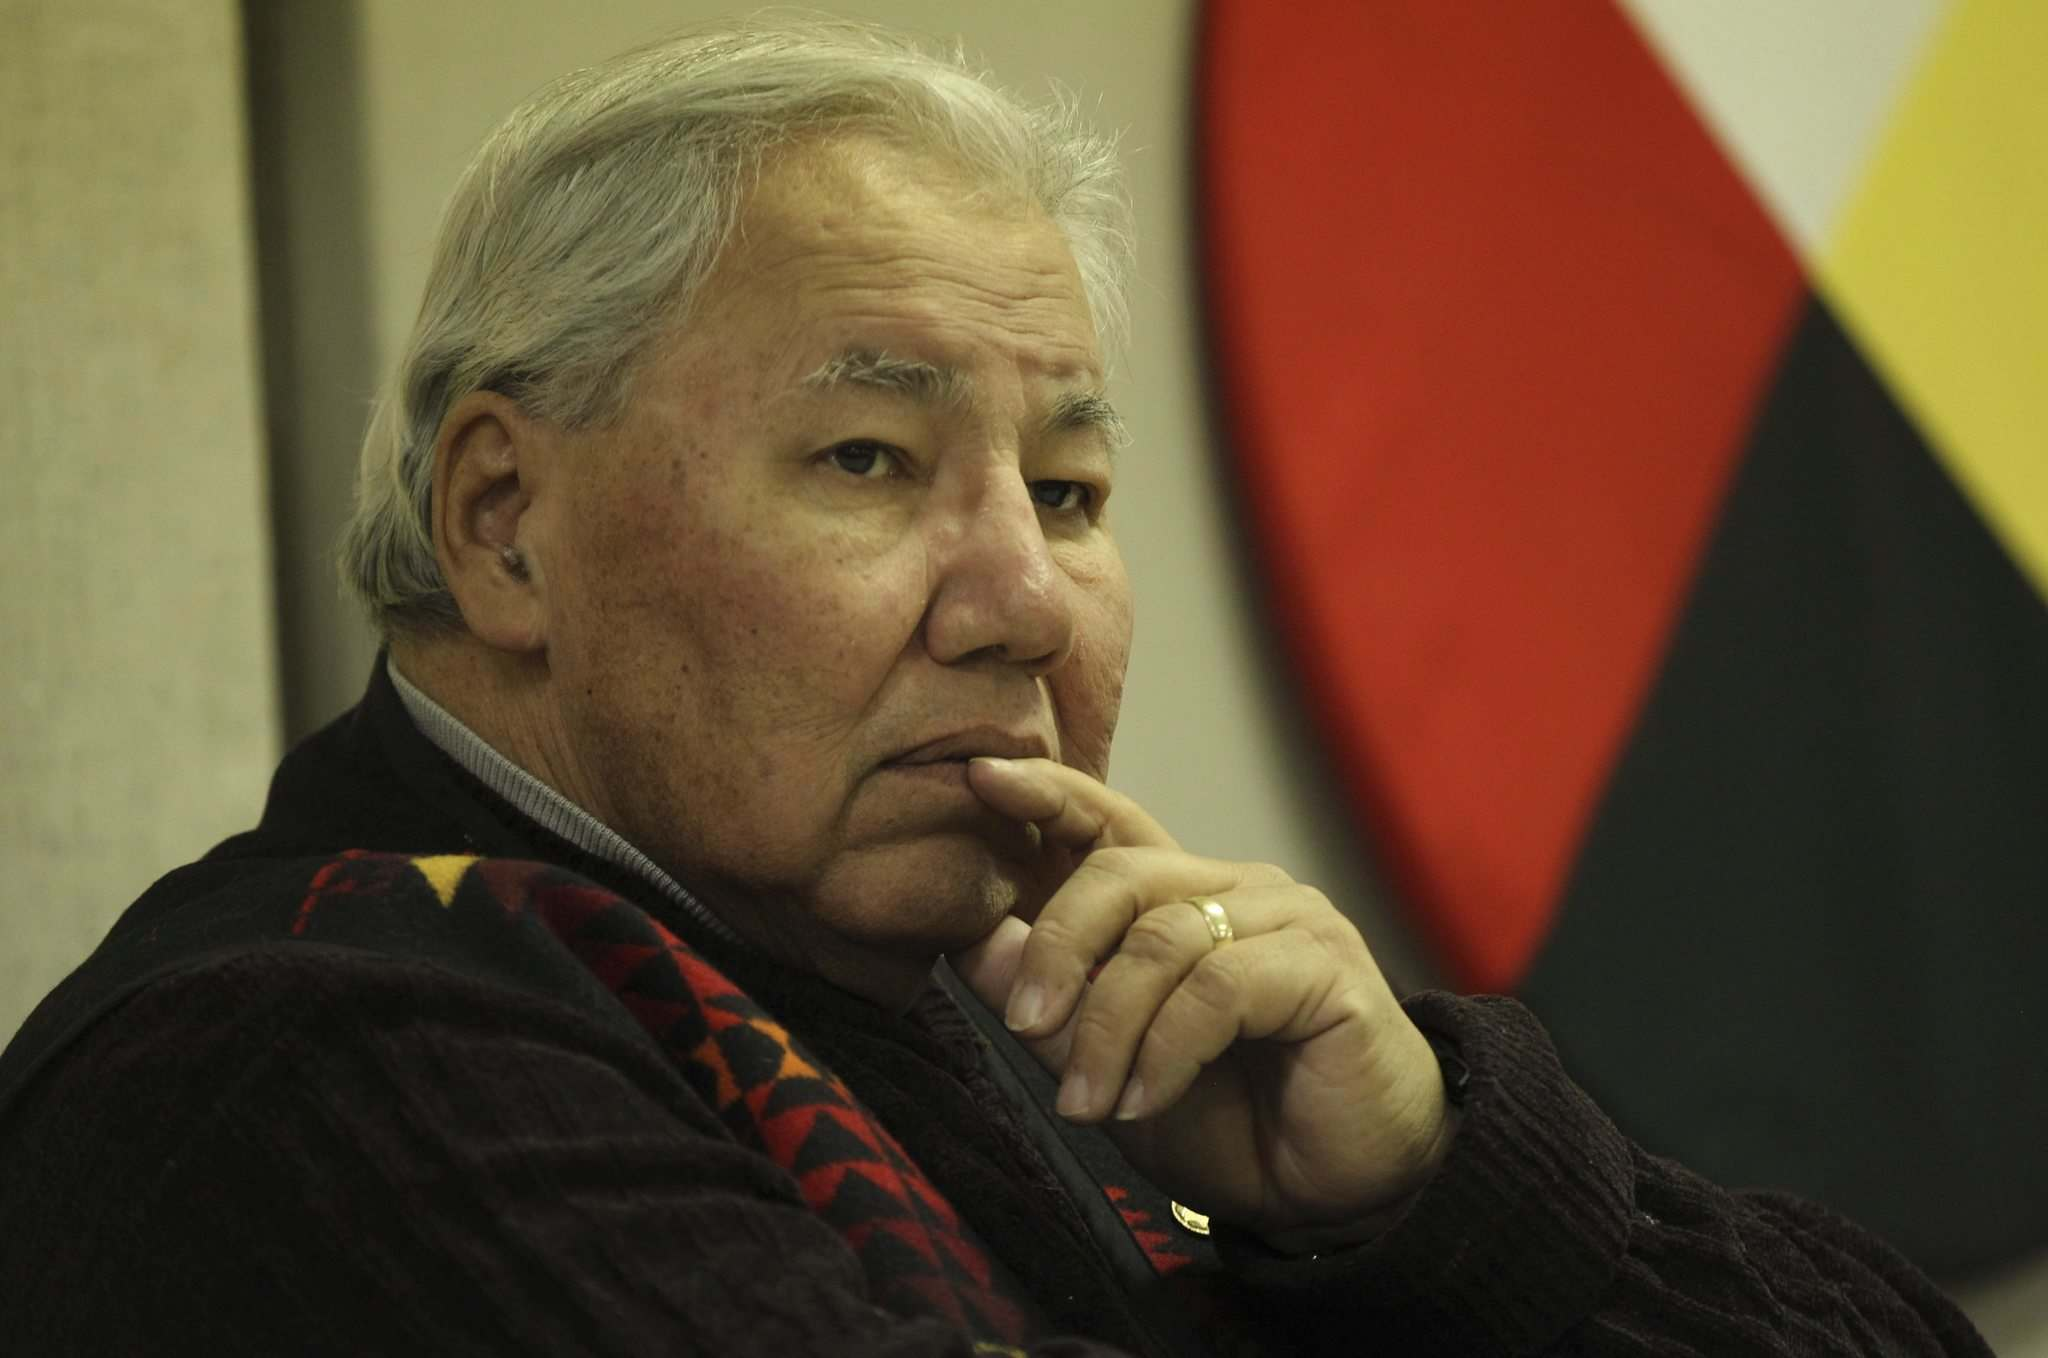 RUTH BONNEVILLE / WINNIPEG FREE PRESS</p><p>Sen. Murray Sinclair, in Winnipeg Monday to unveil plans for a healing forest in St. John&rsquo;s Park, says reforms to Canada&rsquo;s justice system are needed. </p>